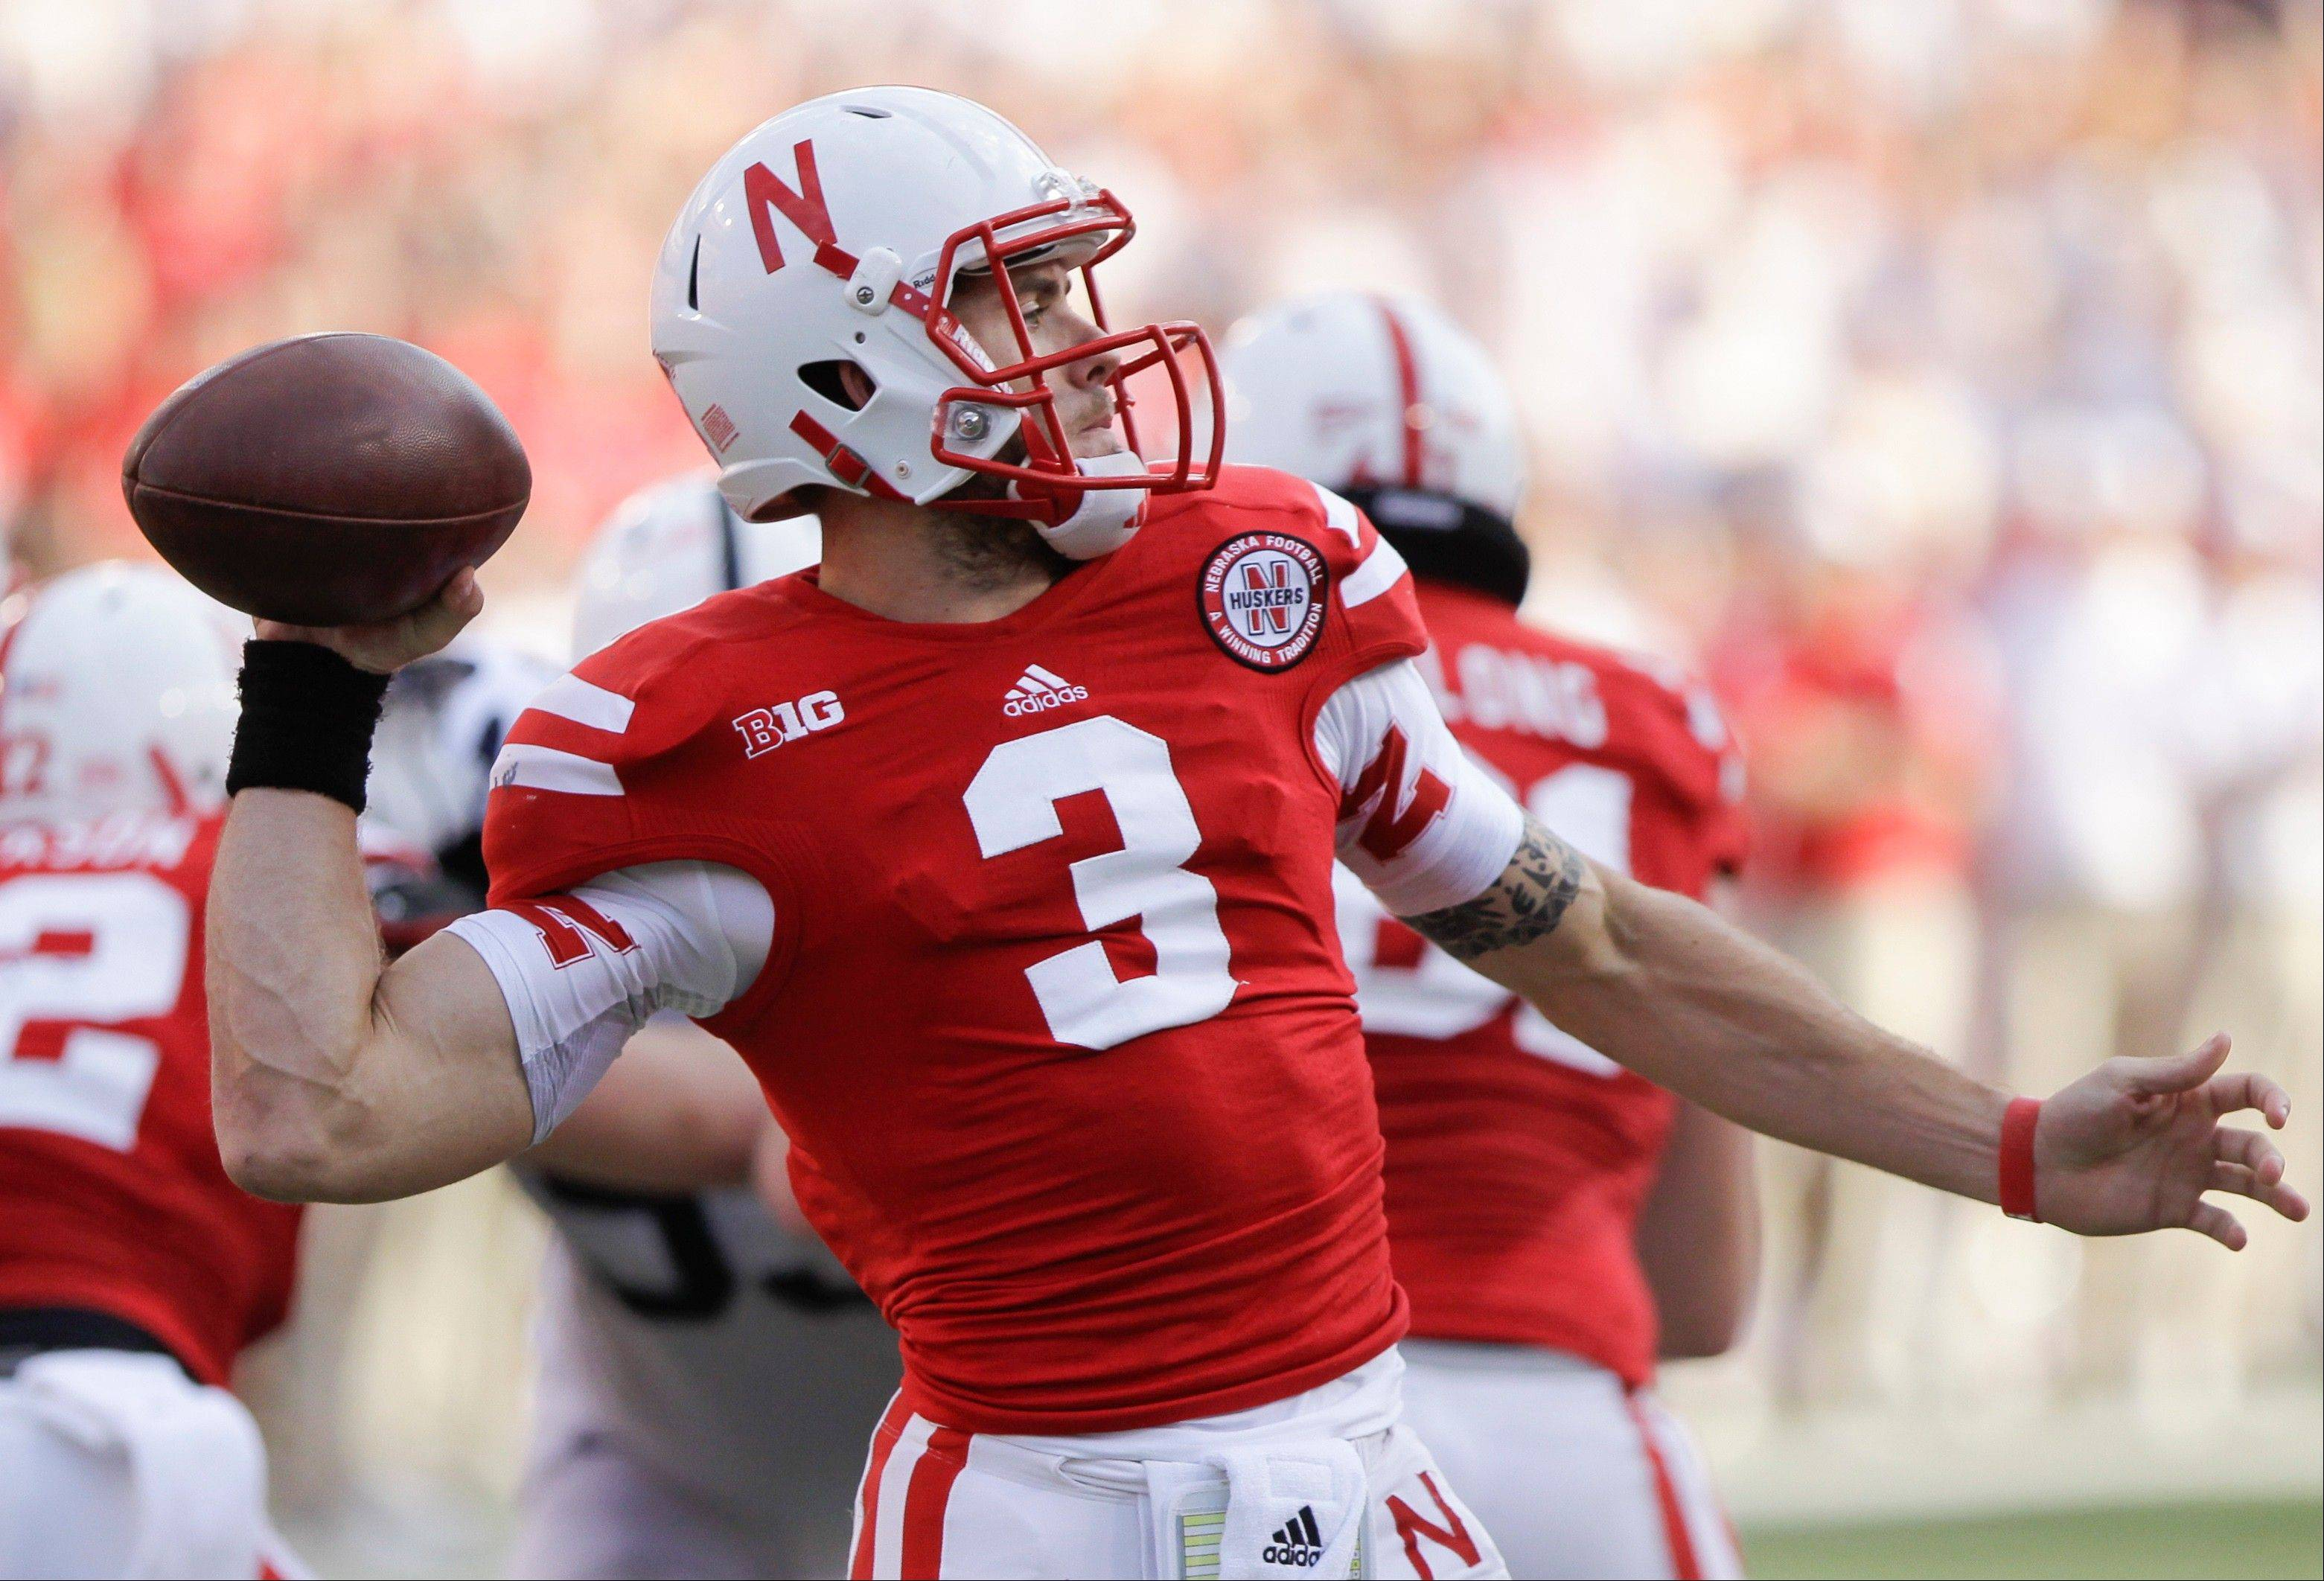 Nebraska quarterback Taylor Martinez throws Saturday during the first half against Penn State in Lincoln.